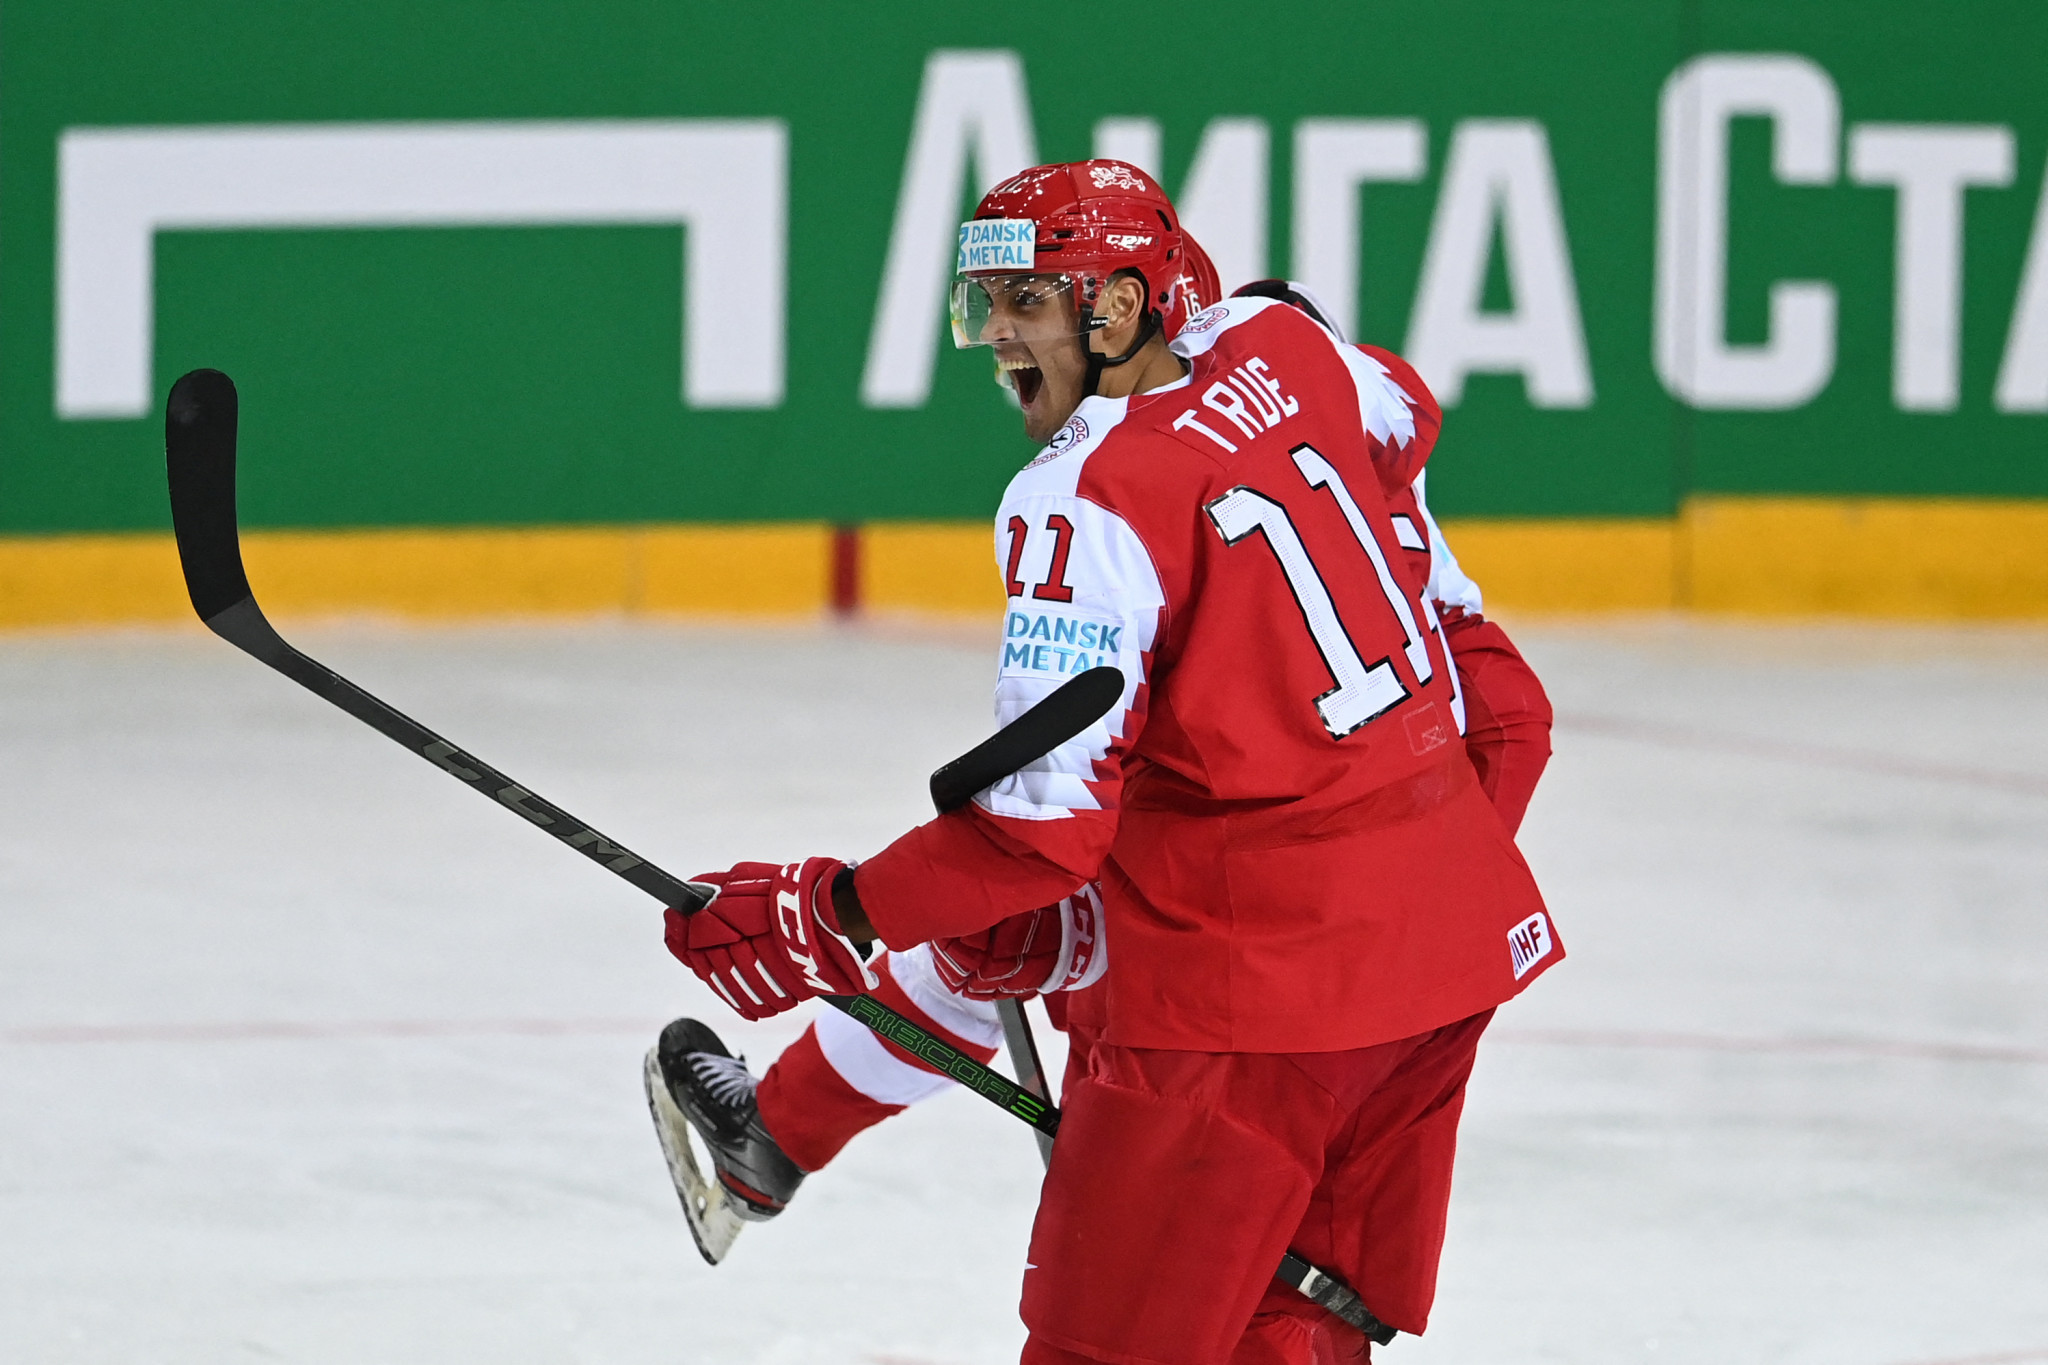 Denmark men's ice hockey team through to first Olympic Games